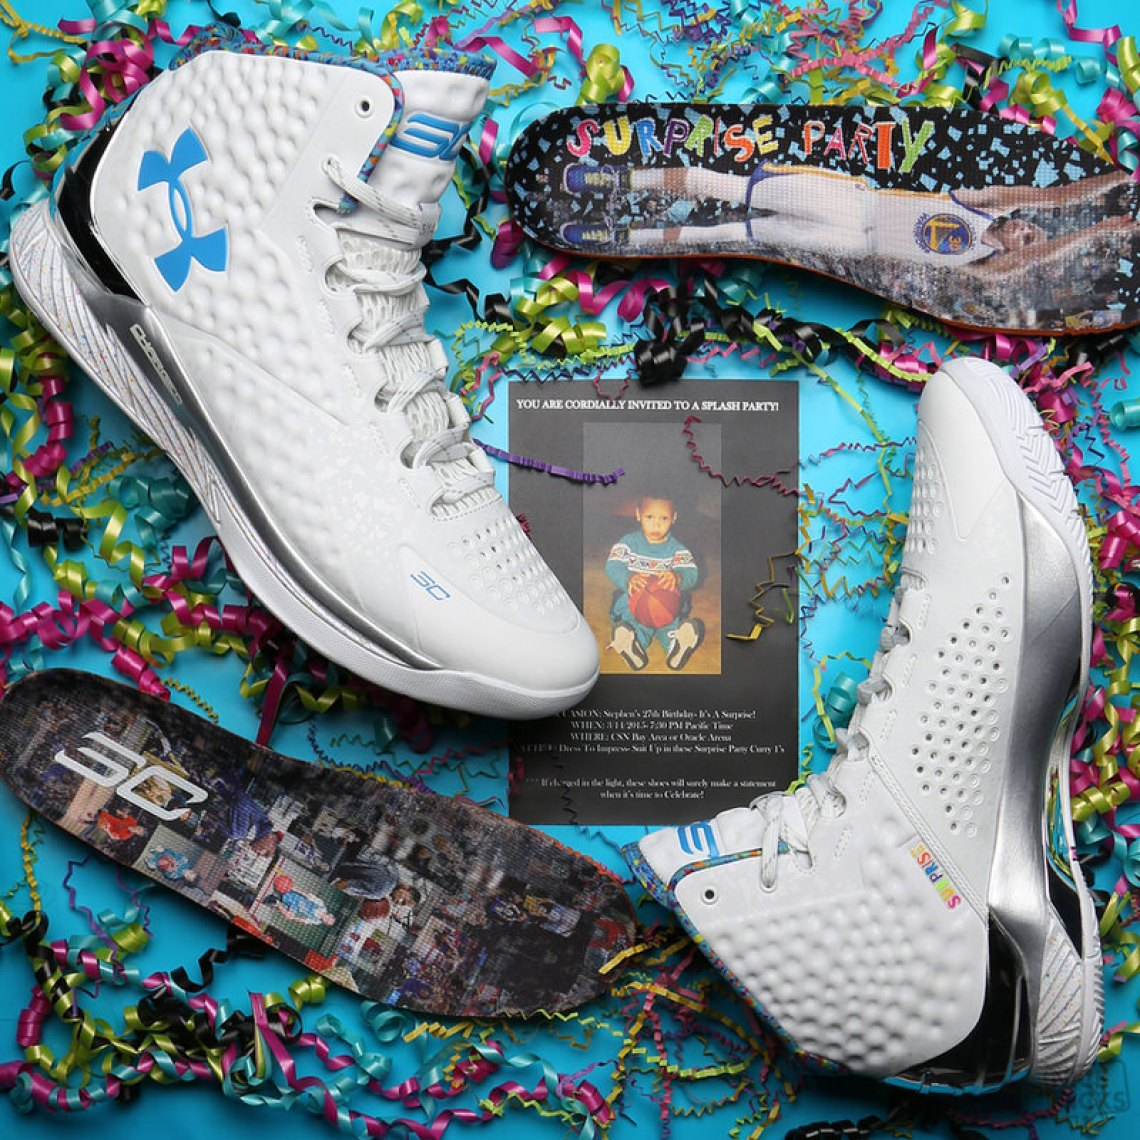 SC Curry One Splash Party Birthday